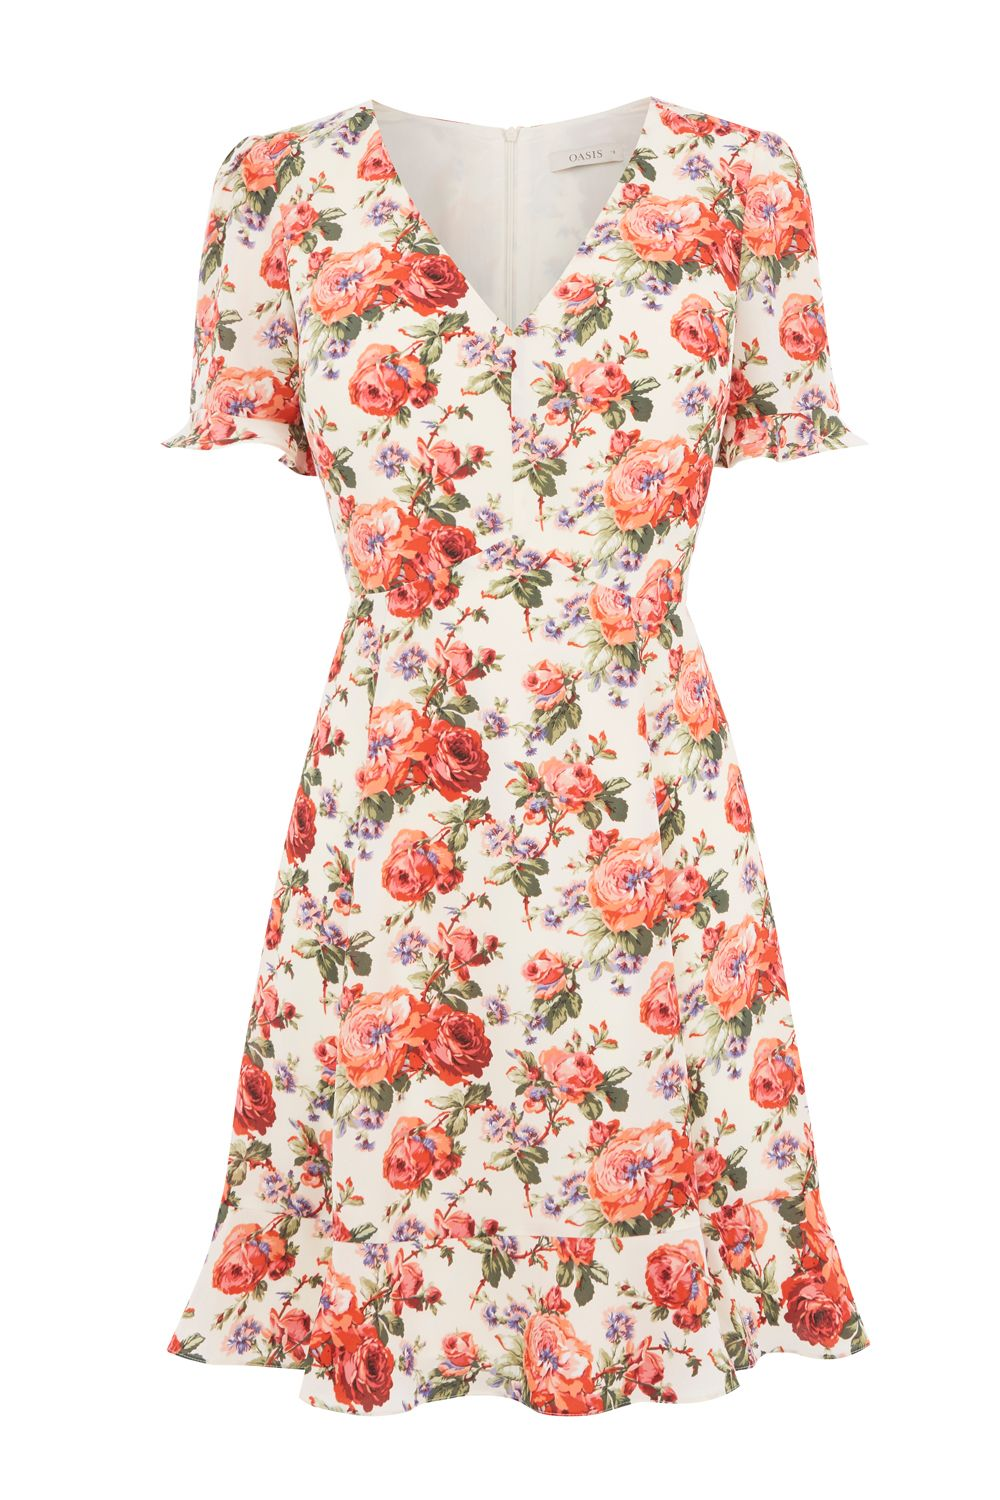 Oasis Utility Rose Tee Dress, Multi-Coloured